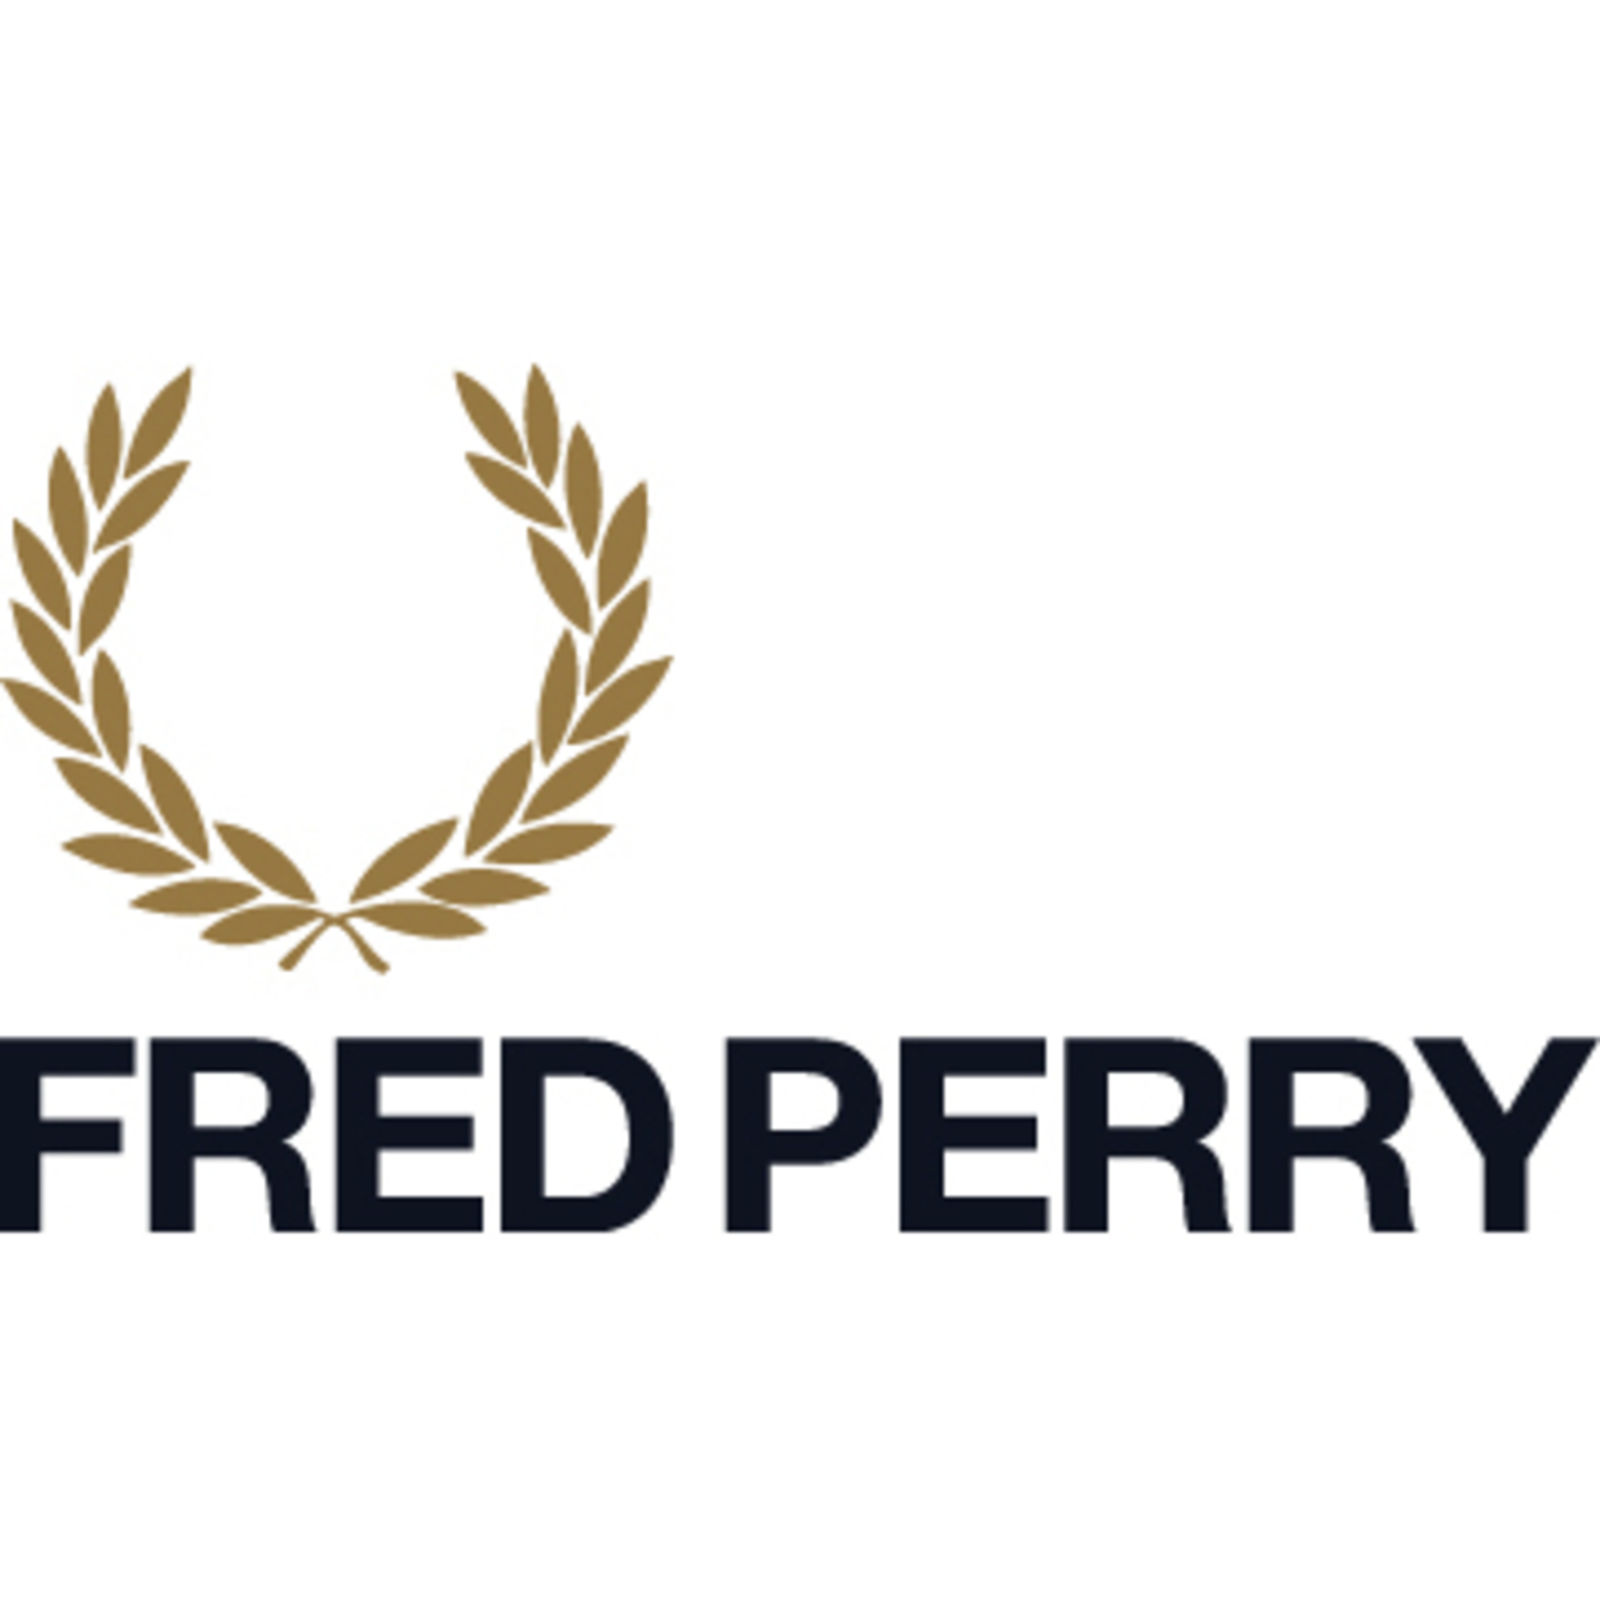 FRED PERRY Authentic (Image 1)